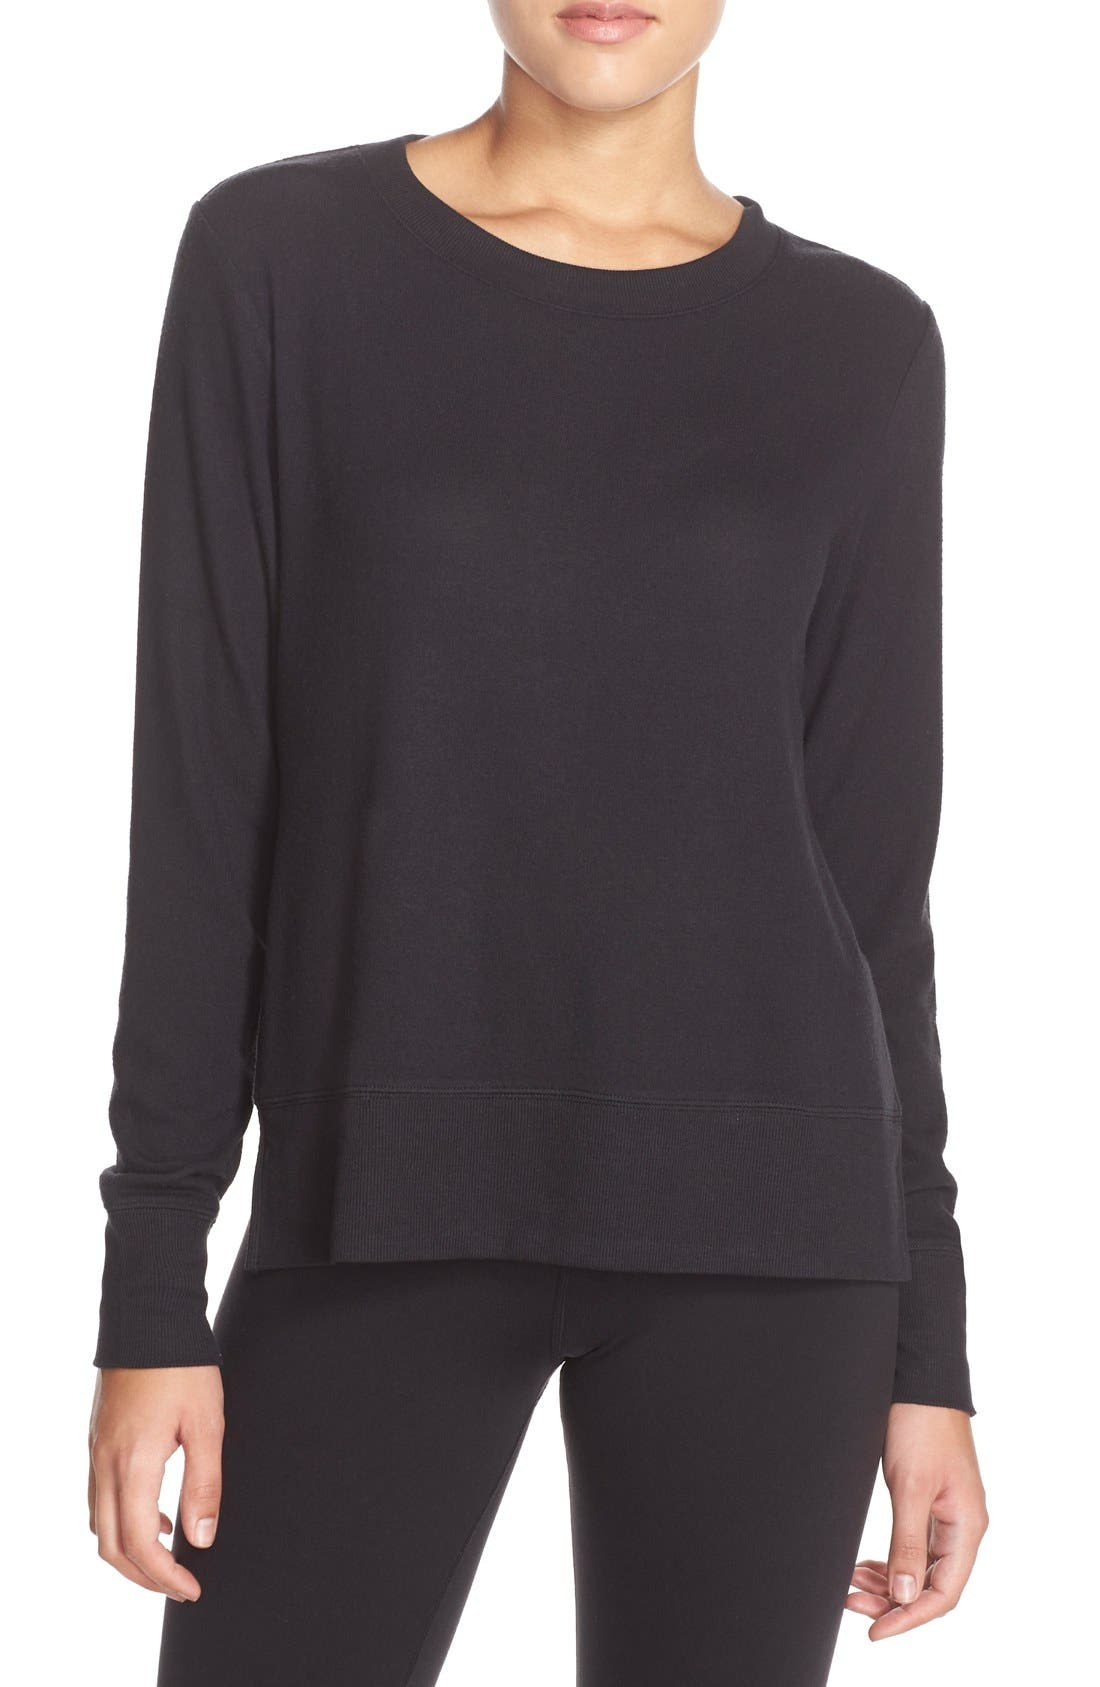 'Glimpse' Long Sleeve Top,                         Main,                         color, Black